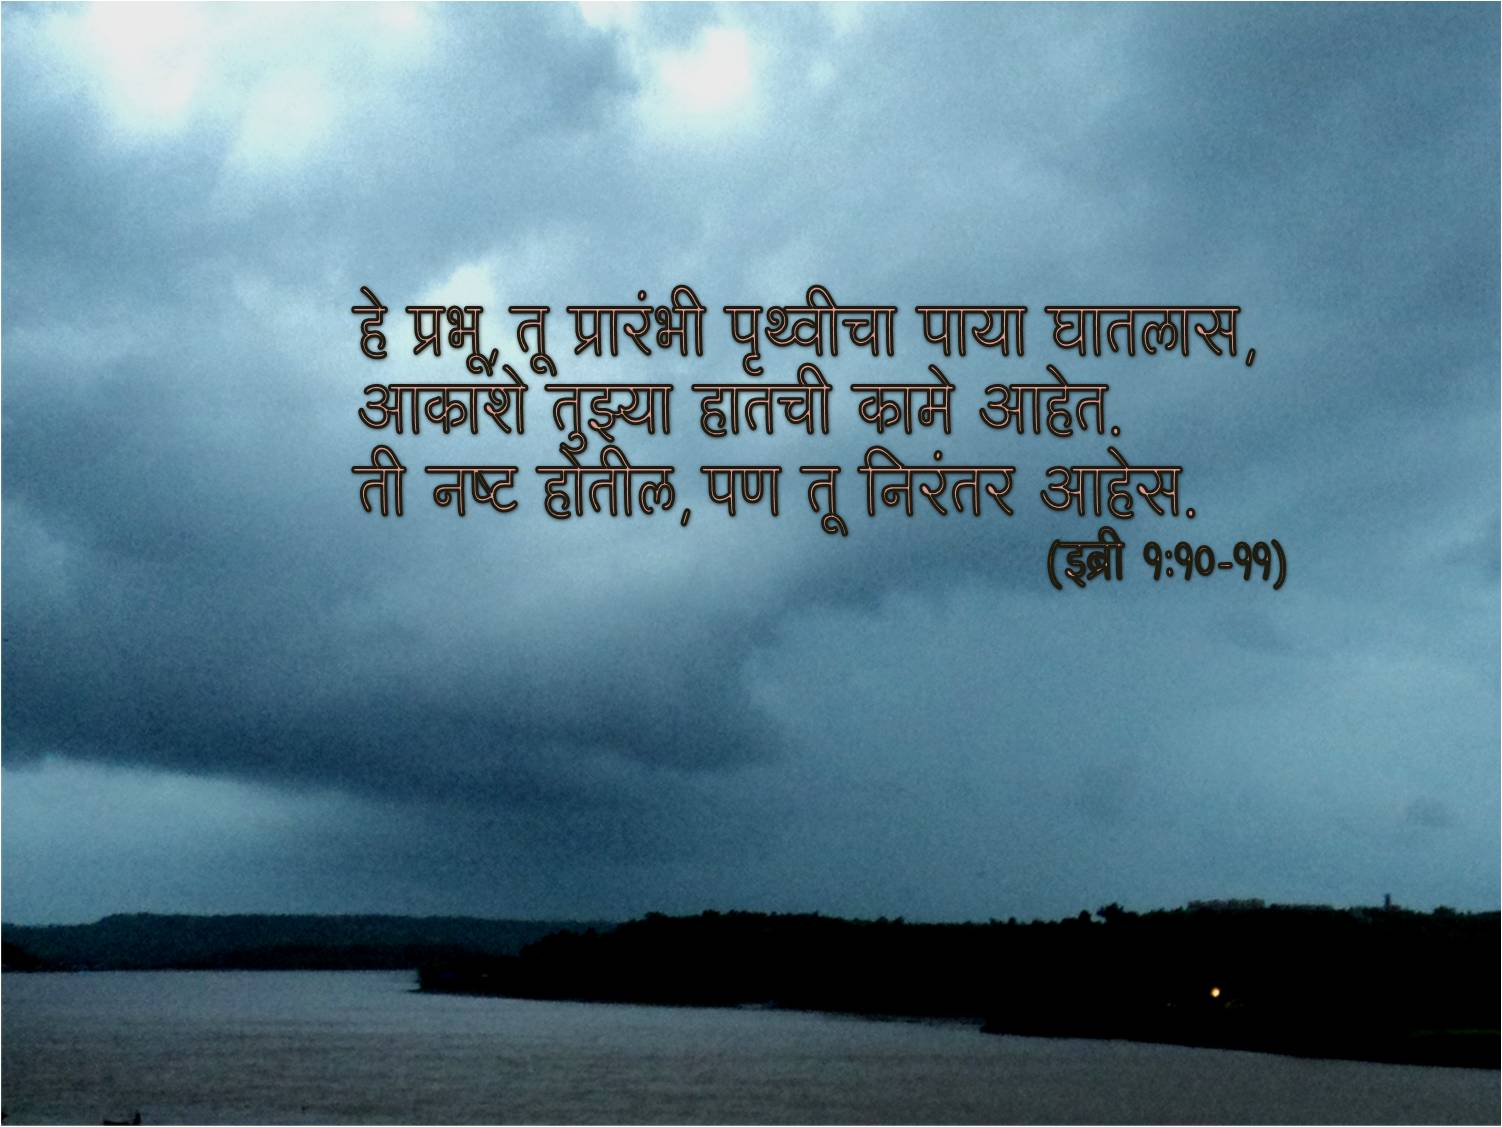 Iphone 5 Wallpaper Free Download Zedge Download Marathi Wallpaper With Quotes Gallery